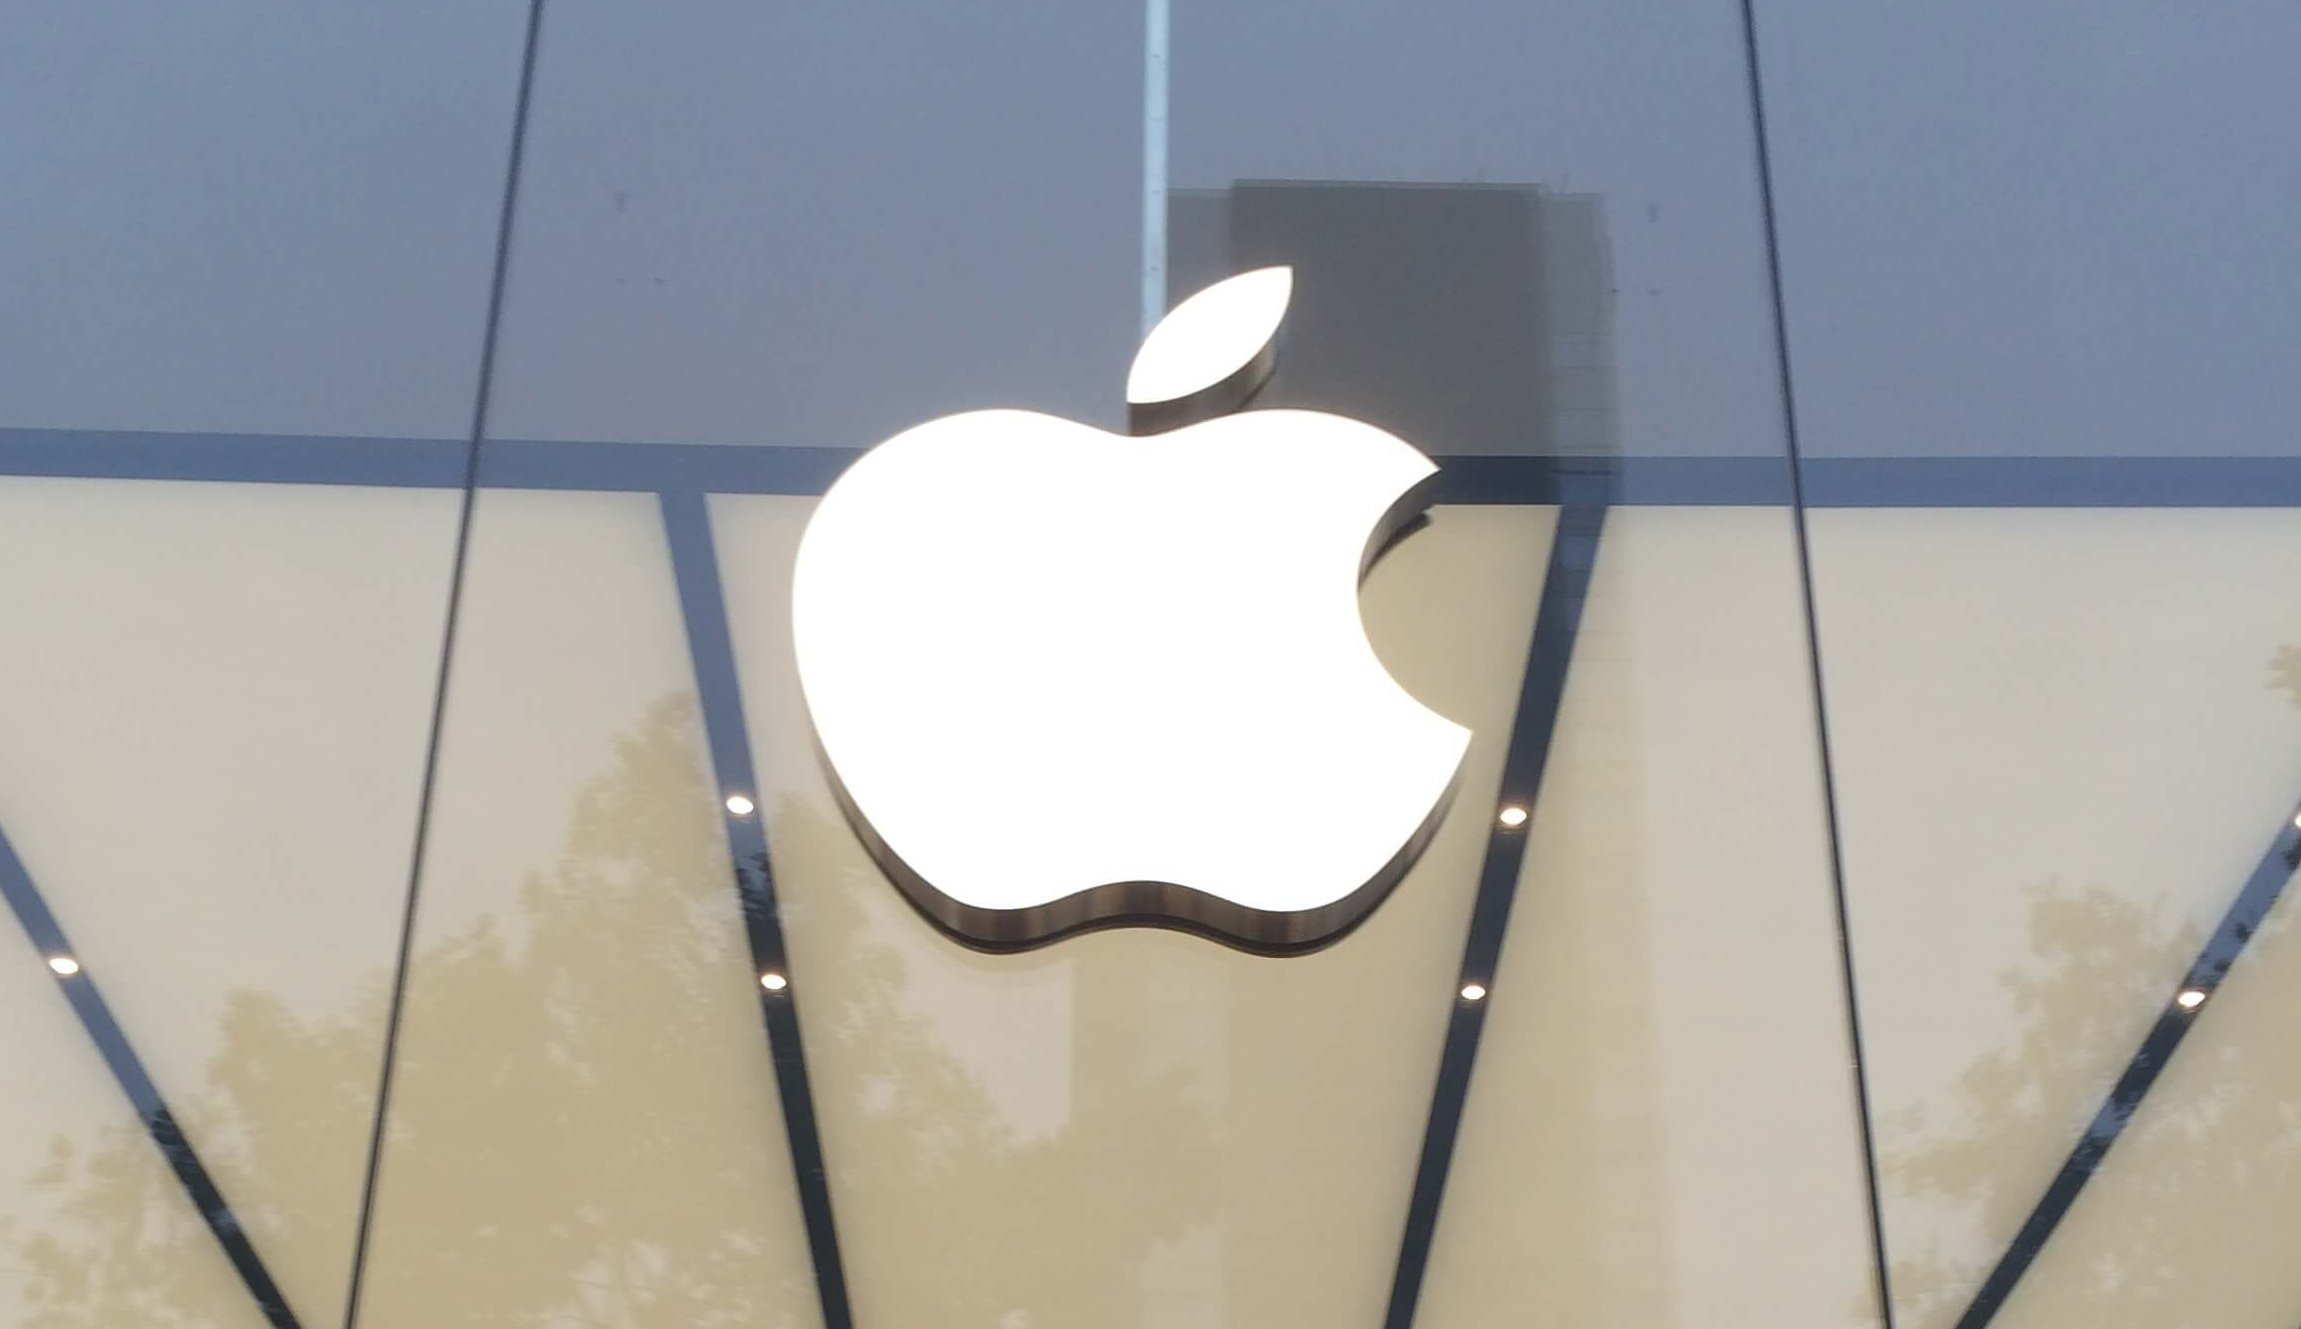 Apple: Business-Segment mit 25 Milliarden USD Umsatz 3